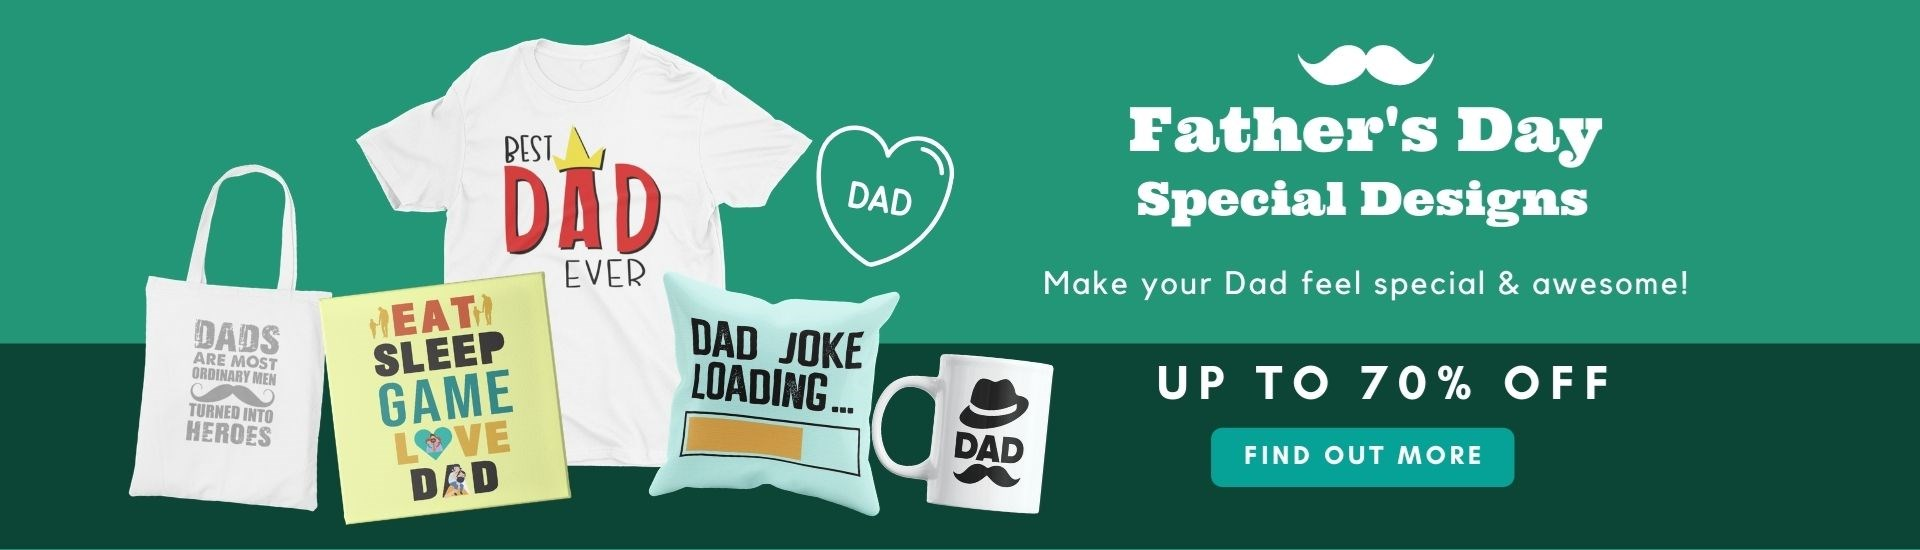 Father's Day Special Designs